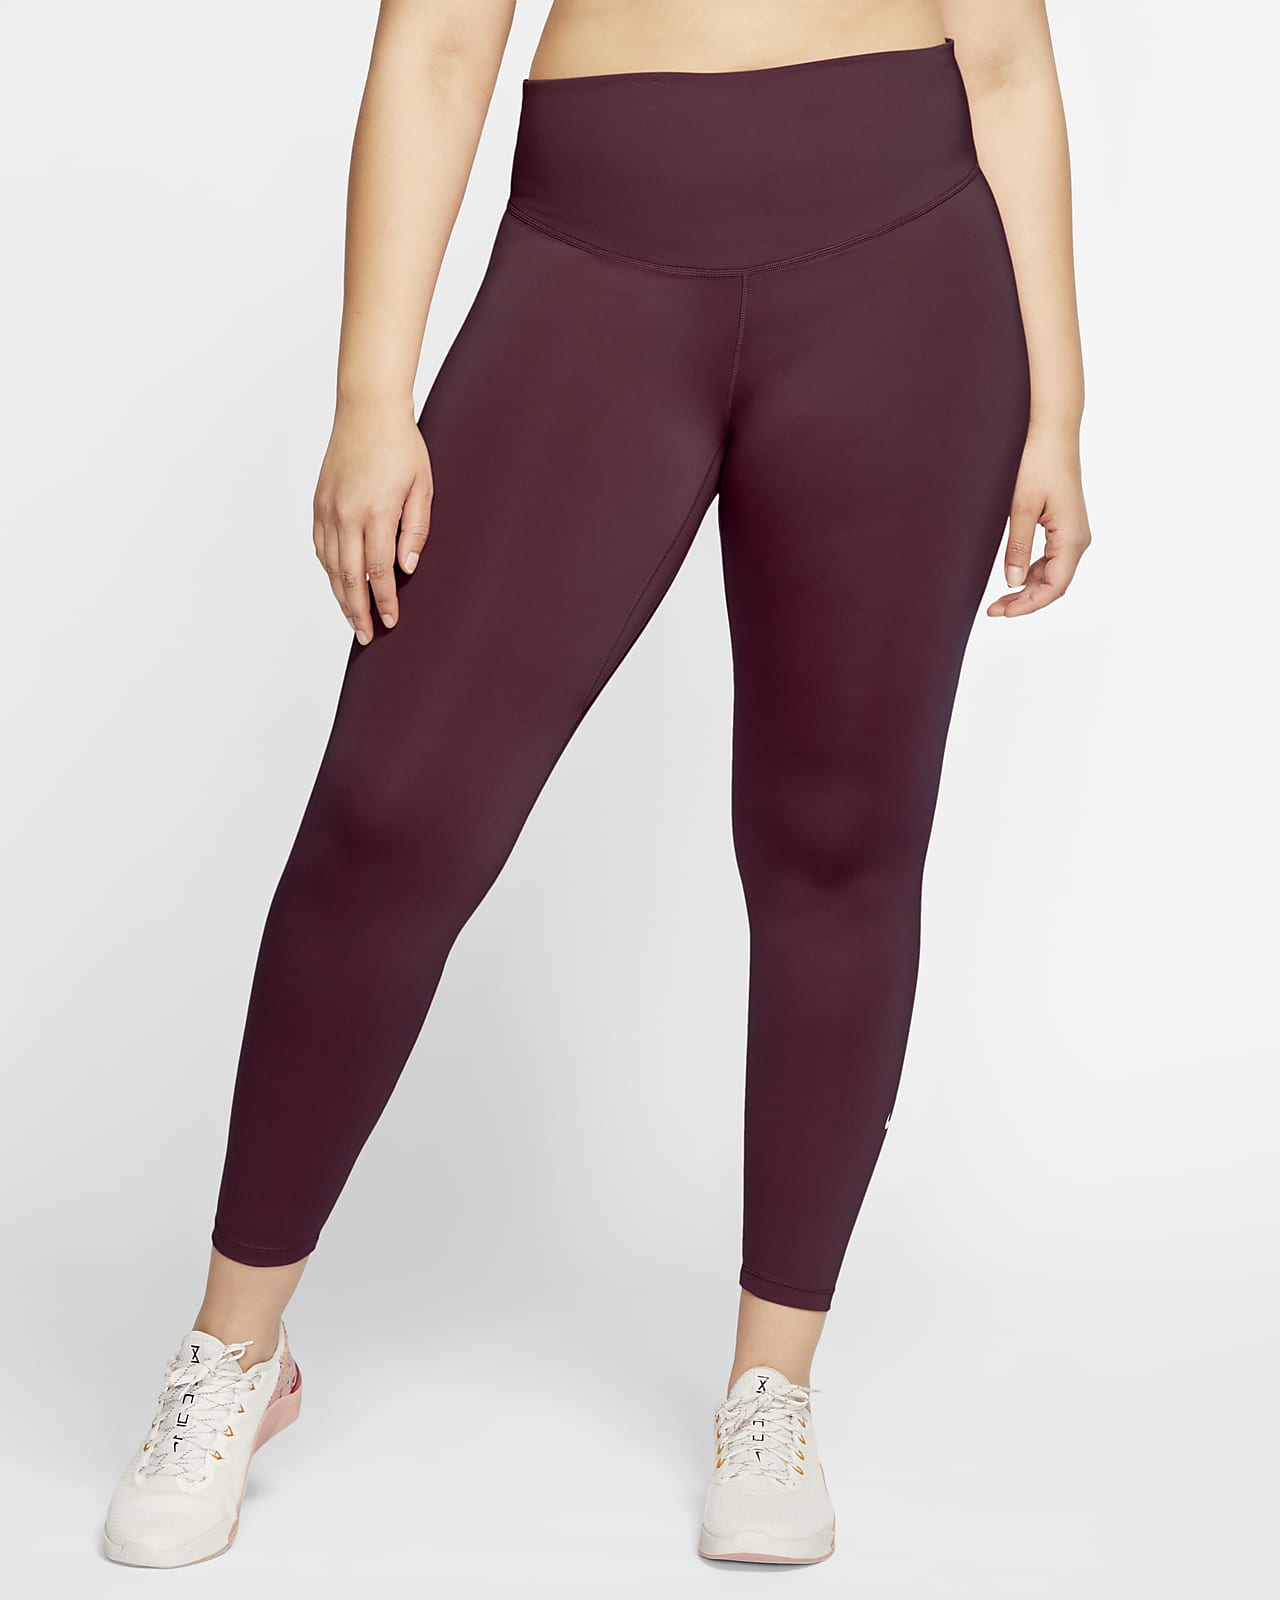 Nike One-tights til kvinder (Plus size)